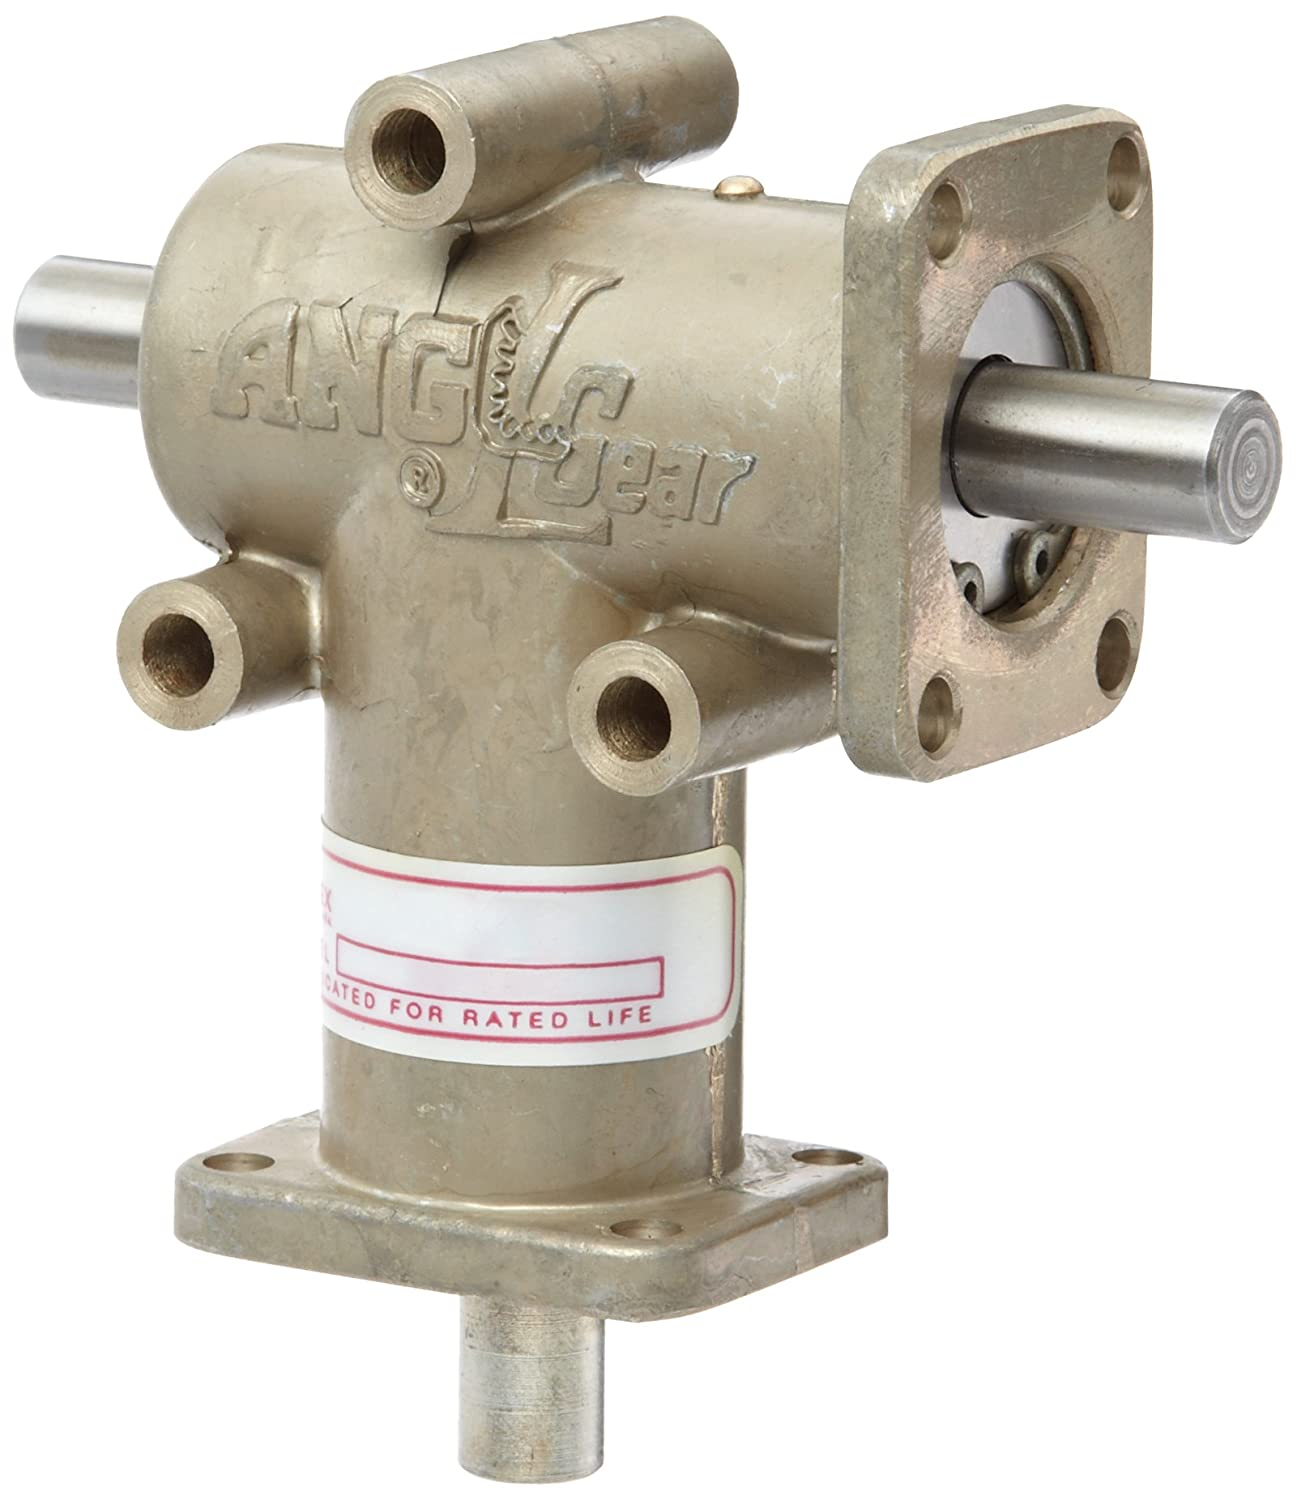 Image of Andantex R3100-2 Anglgear Right Angle Bevel Gear Drive, Universal Mounting, Two Output Shafts, 2 Flanges, Inch, 3/8' Shaft Diameter, 2:1 Ratio.11 Hp at 1750rpm Gearheads & Speed Reducers